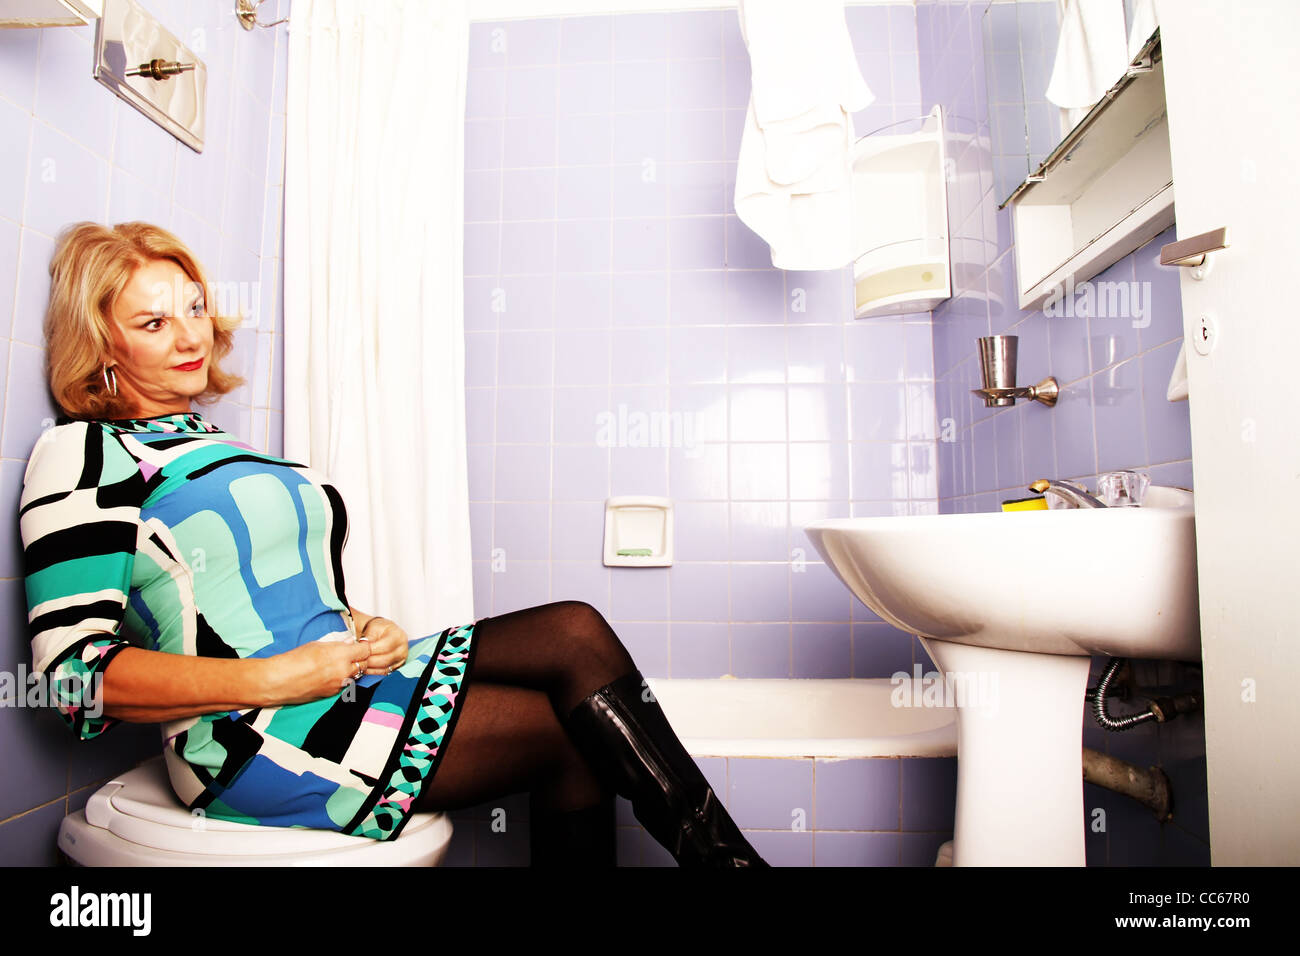 Desperate to use the bathroom - Vintage Femme Fatal Retro Shoot Woman Sitting On The Toilet Stock